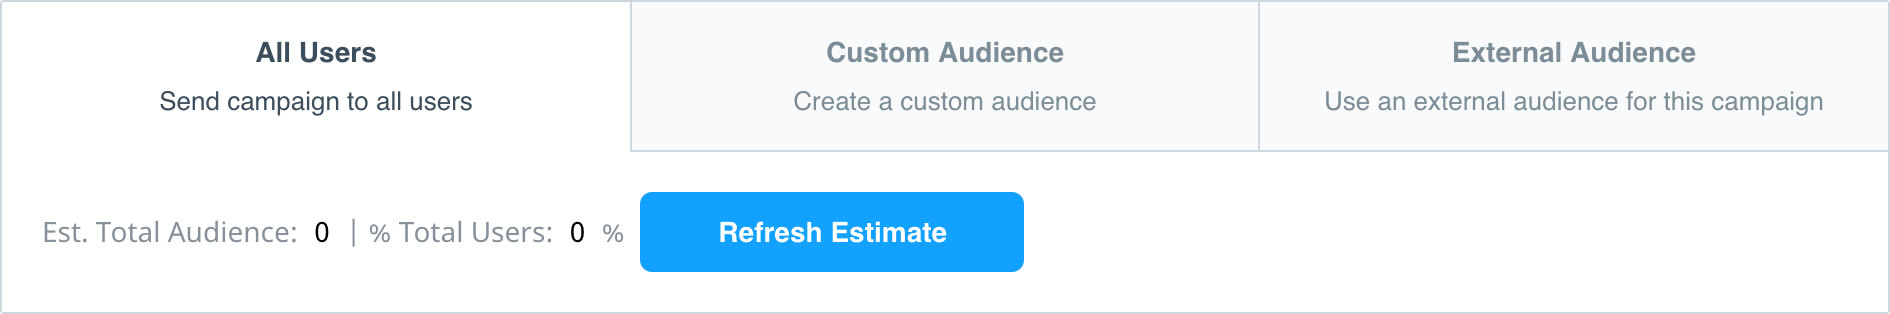 Campaign audience builder with custom audience and external audience tabs